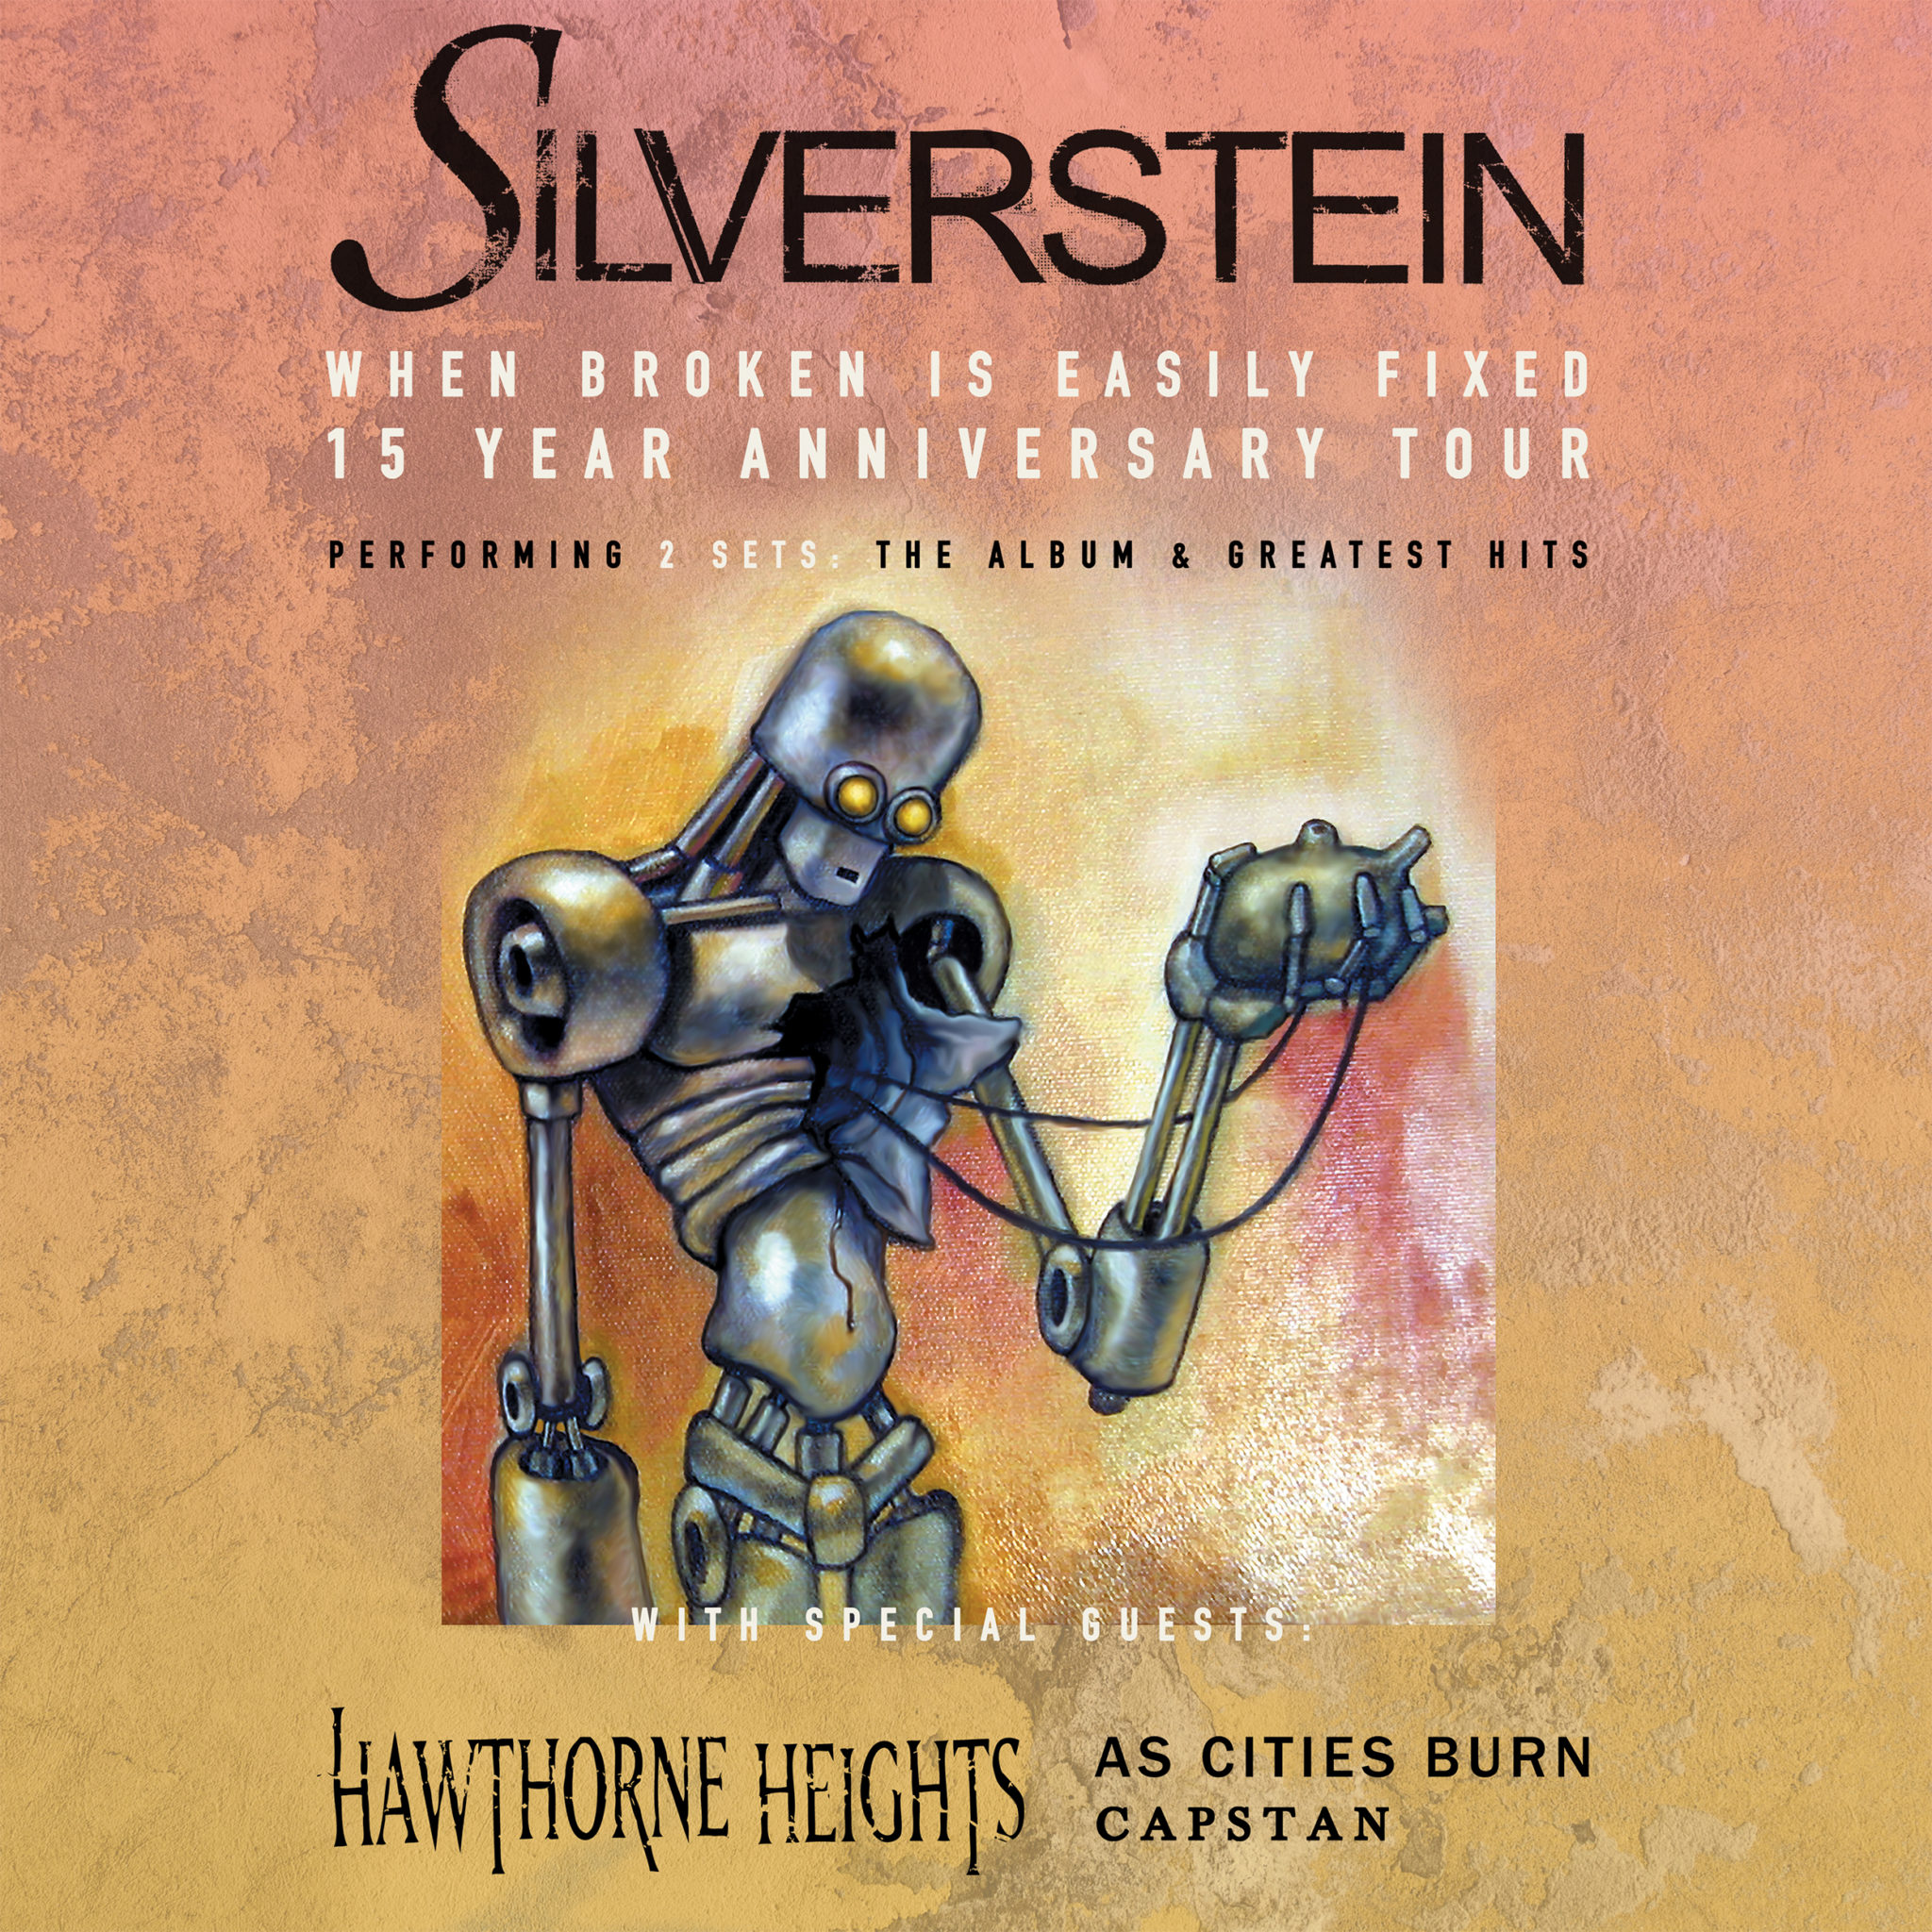 Silverstein's When Broken Is Easily Fixed Tour: The Tour You've Been Needing Since Warped Tour Cancelled